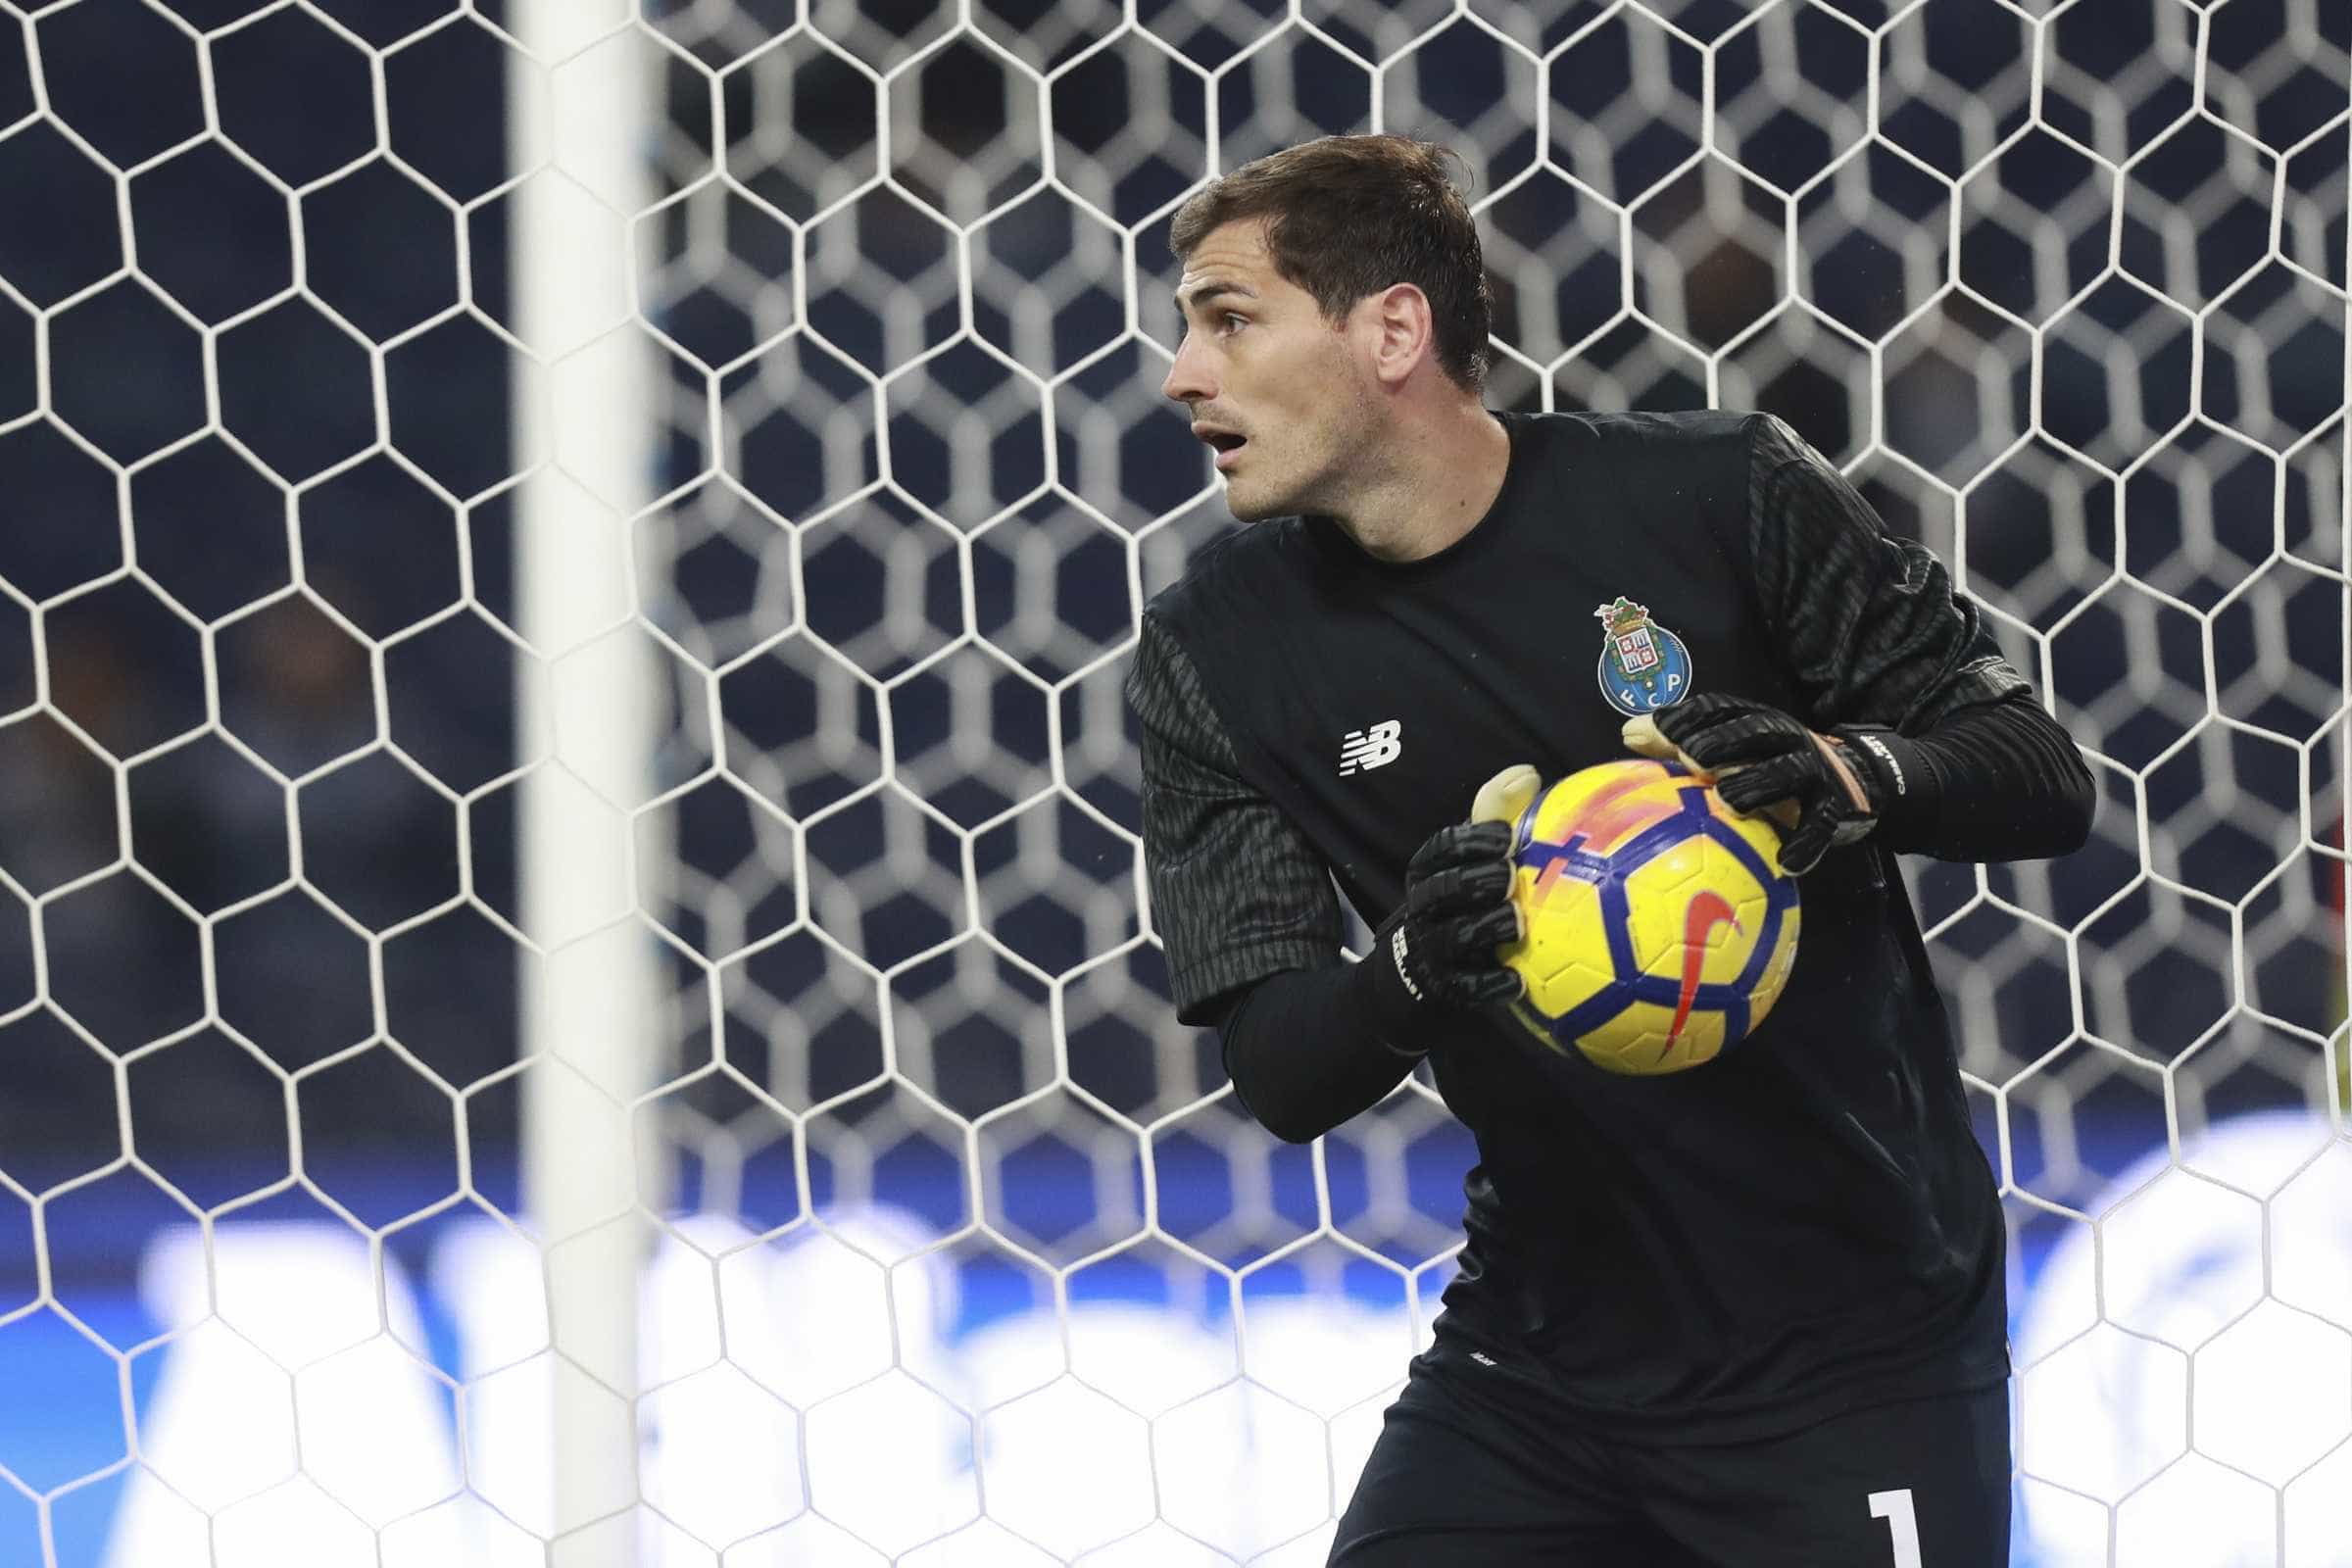 Casillas: As 'pisadas' de Buffon, o Liverpool e o jogo saboroso... na Luz